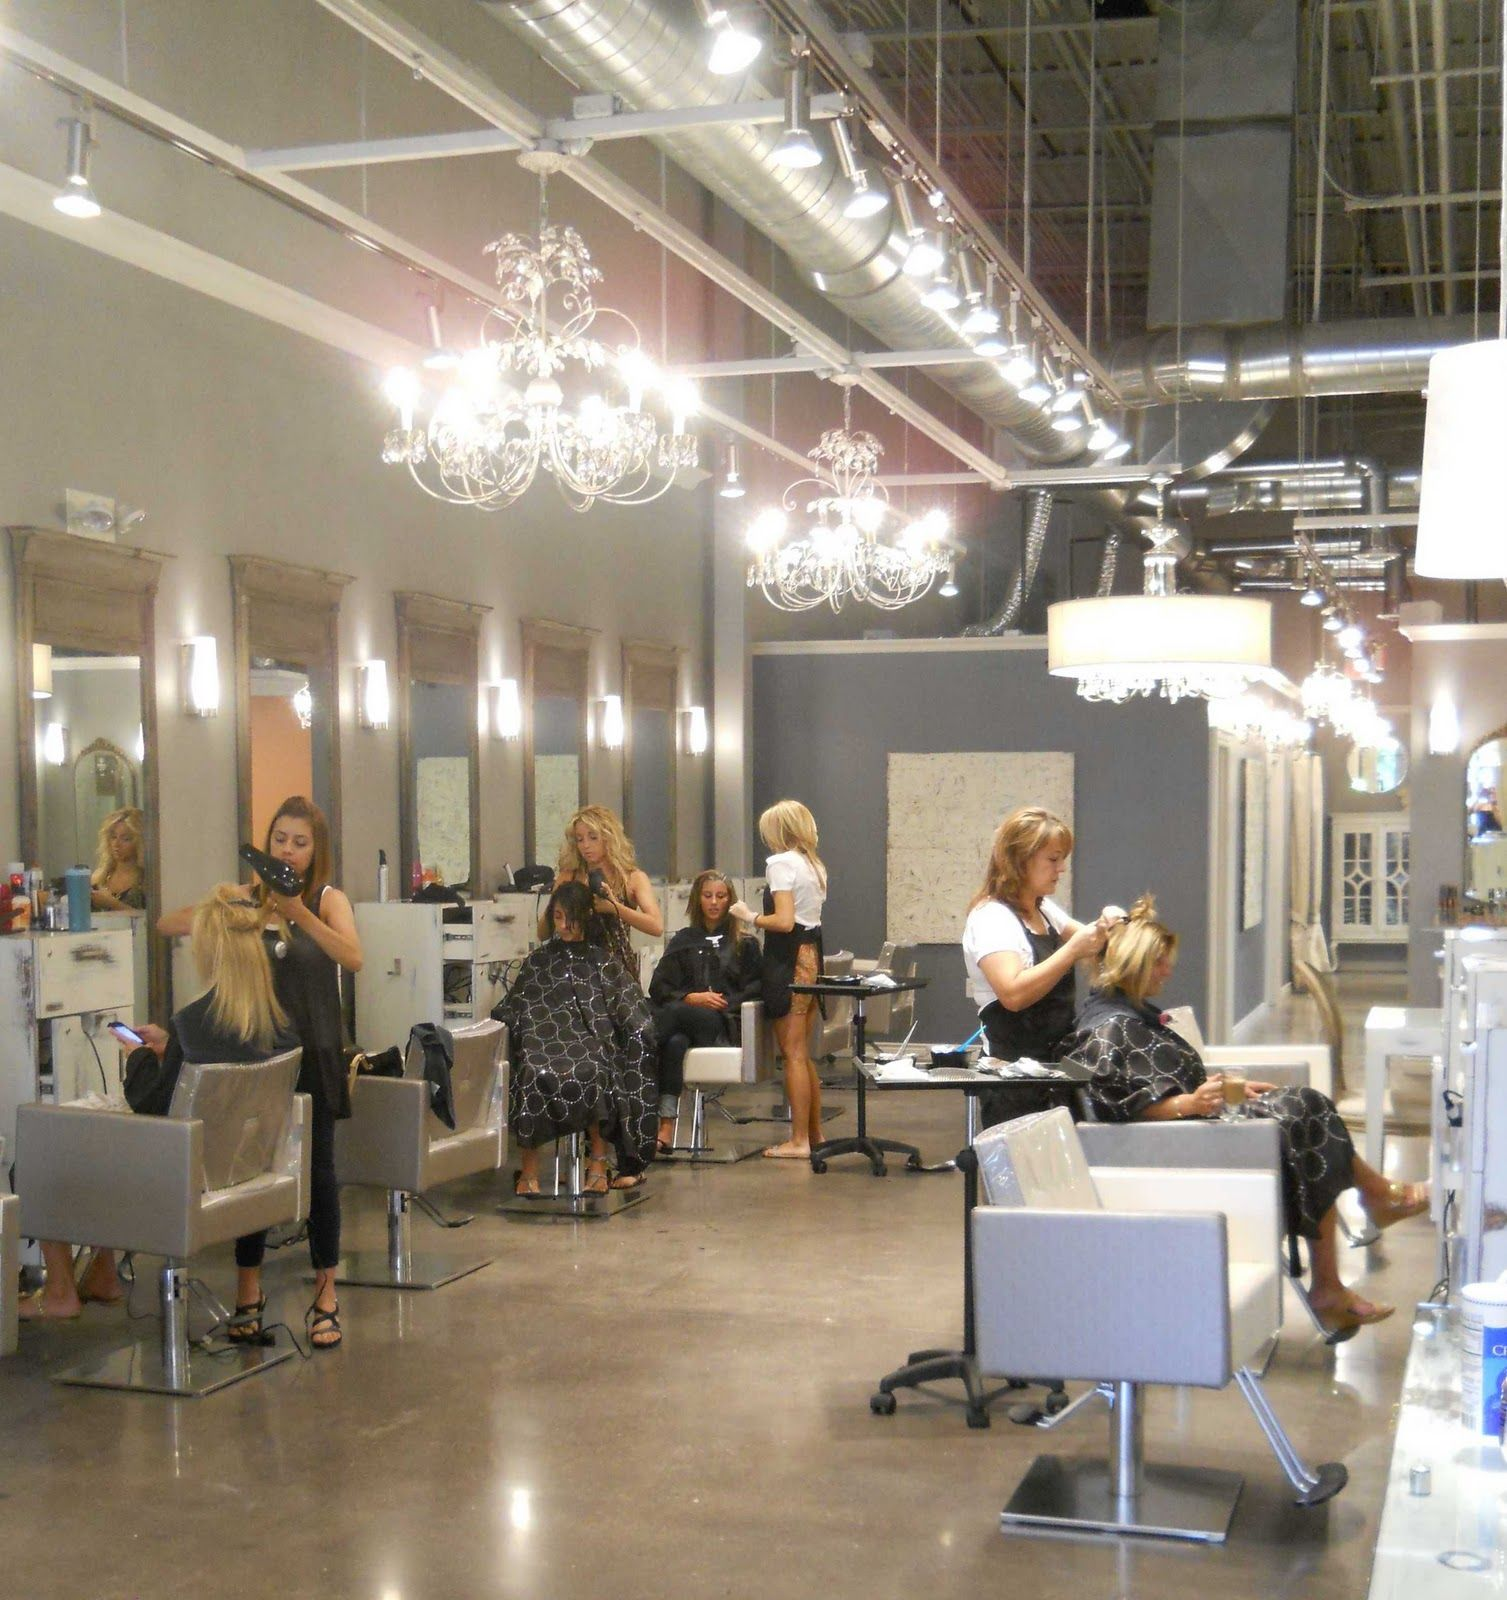 Oh My Gosh This Salon Is Amazing If I Were To Open Own Would Want It Look Like